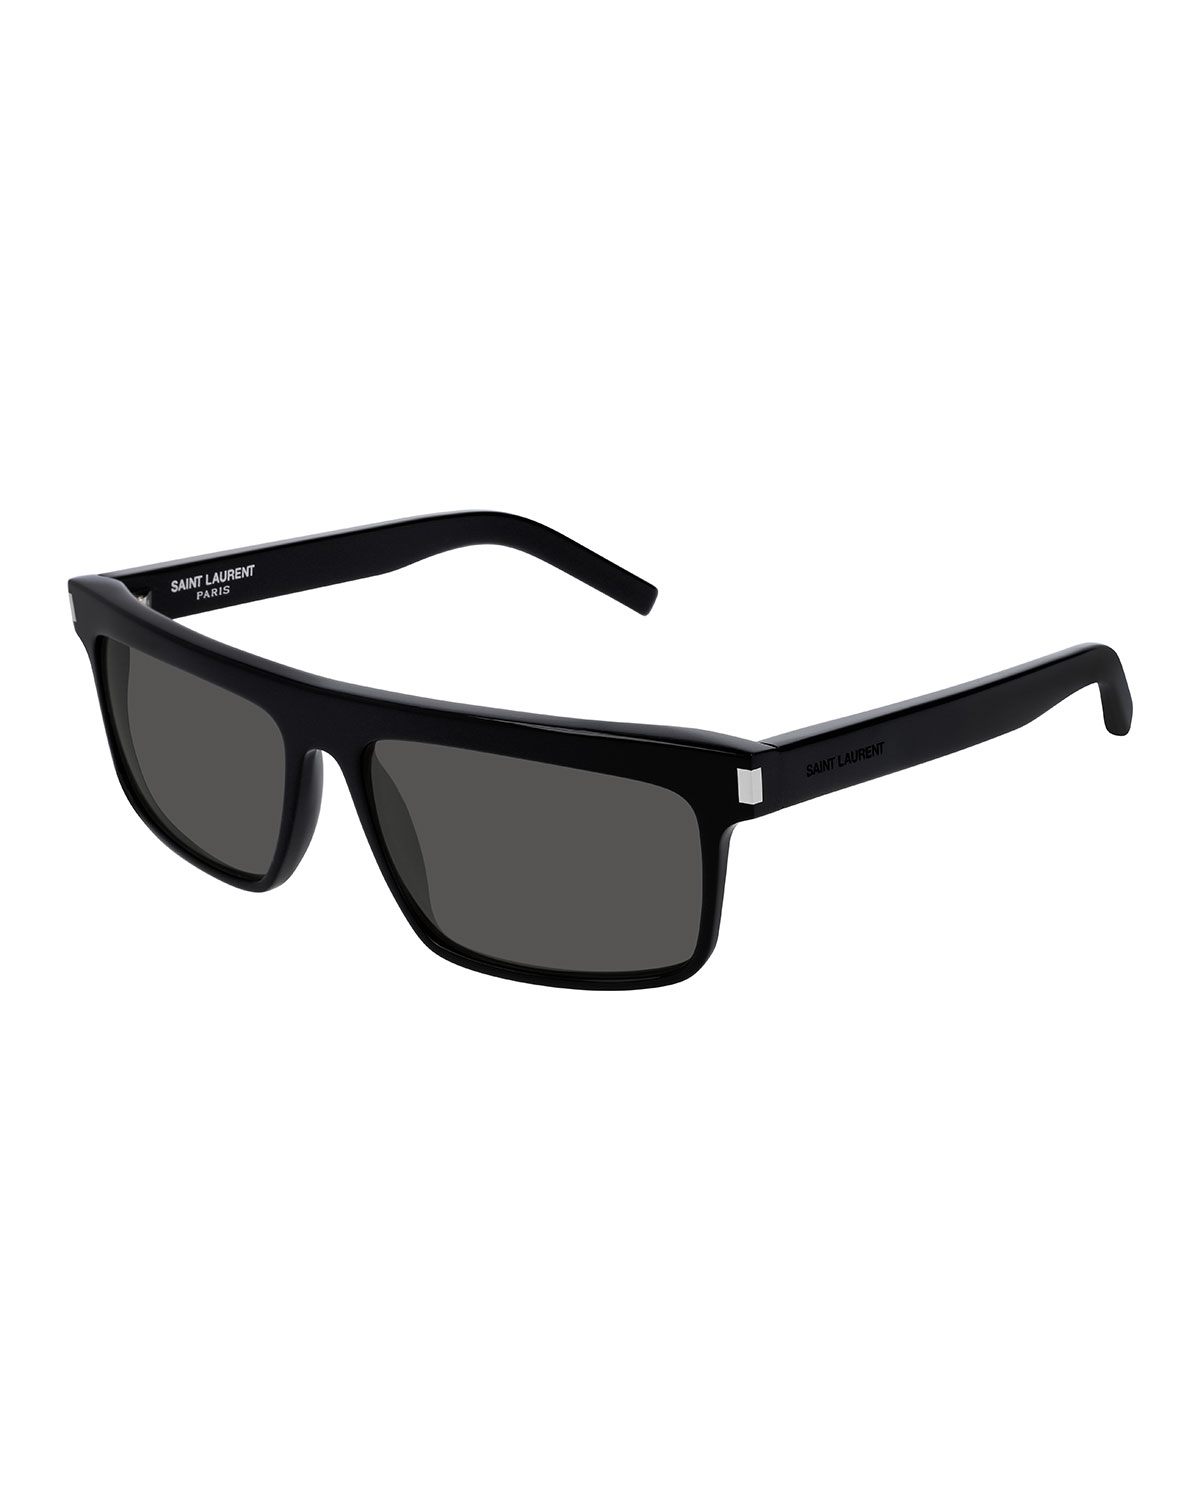 Men'S Flattop Rectangle Sunglasses With Mineral Glass Lenses in Black/ Black/ Smoke